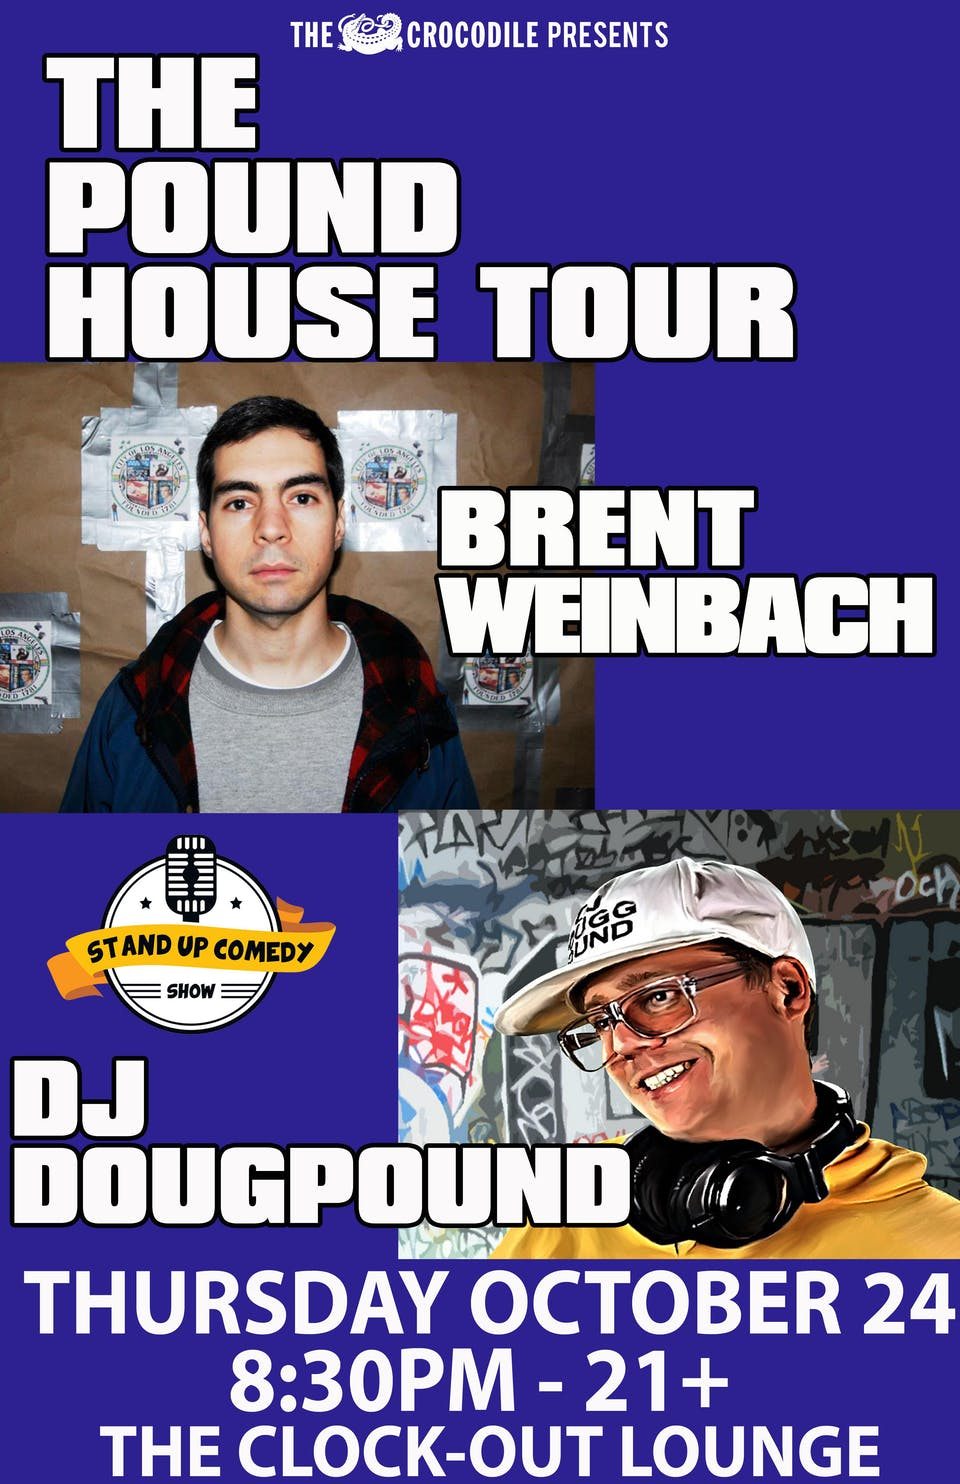 The Pound House Tour : Brent Weinbach and DJ Douggpound